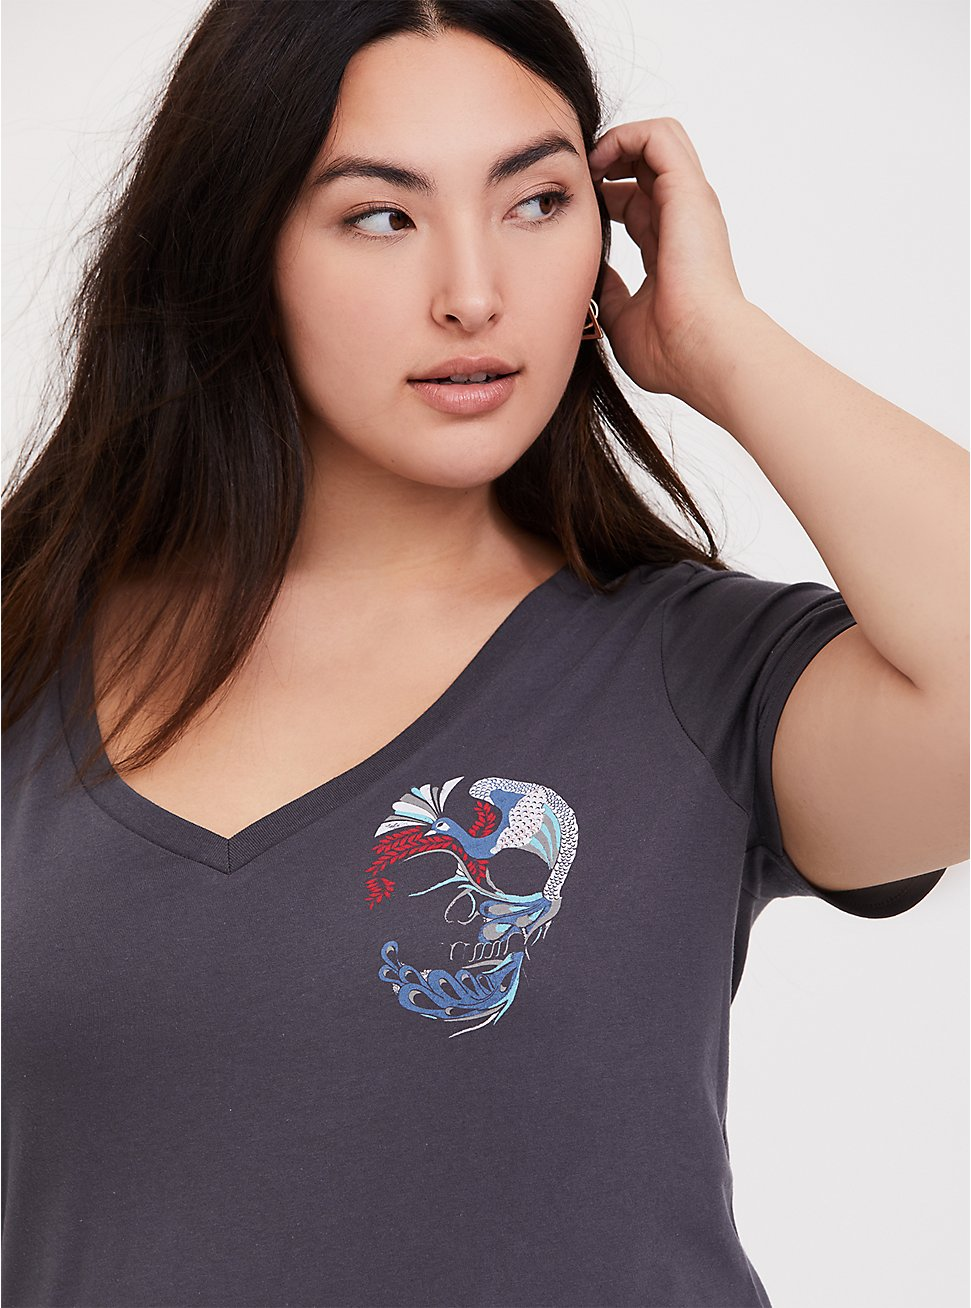 Slate Grey Peacock Skull Slim Fit V-Neck Tee, NINE IRON, hi-res